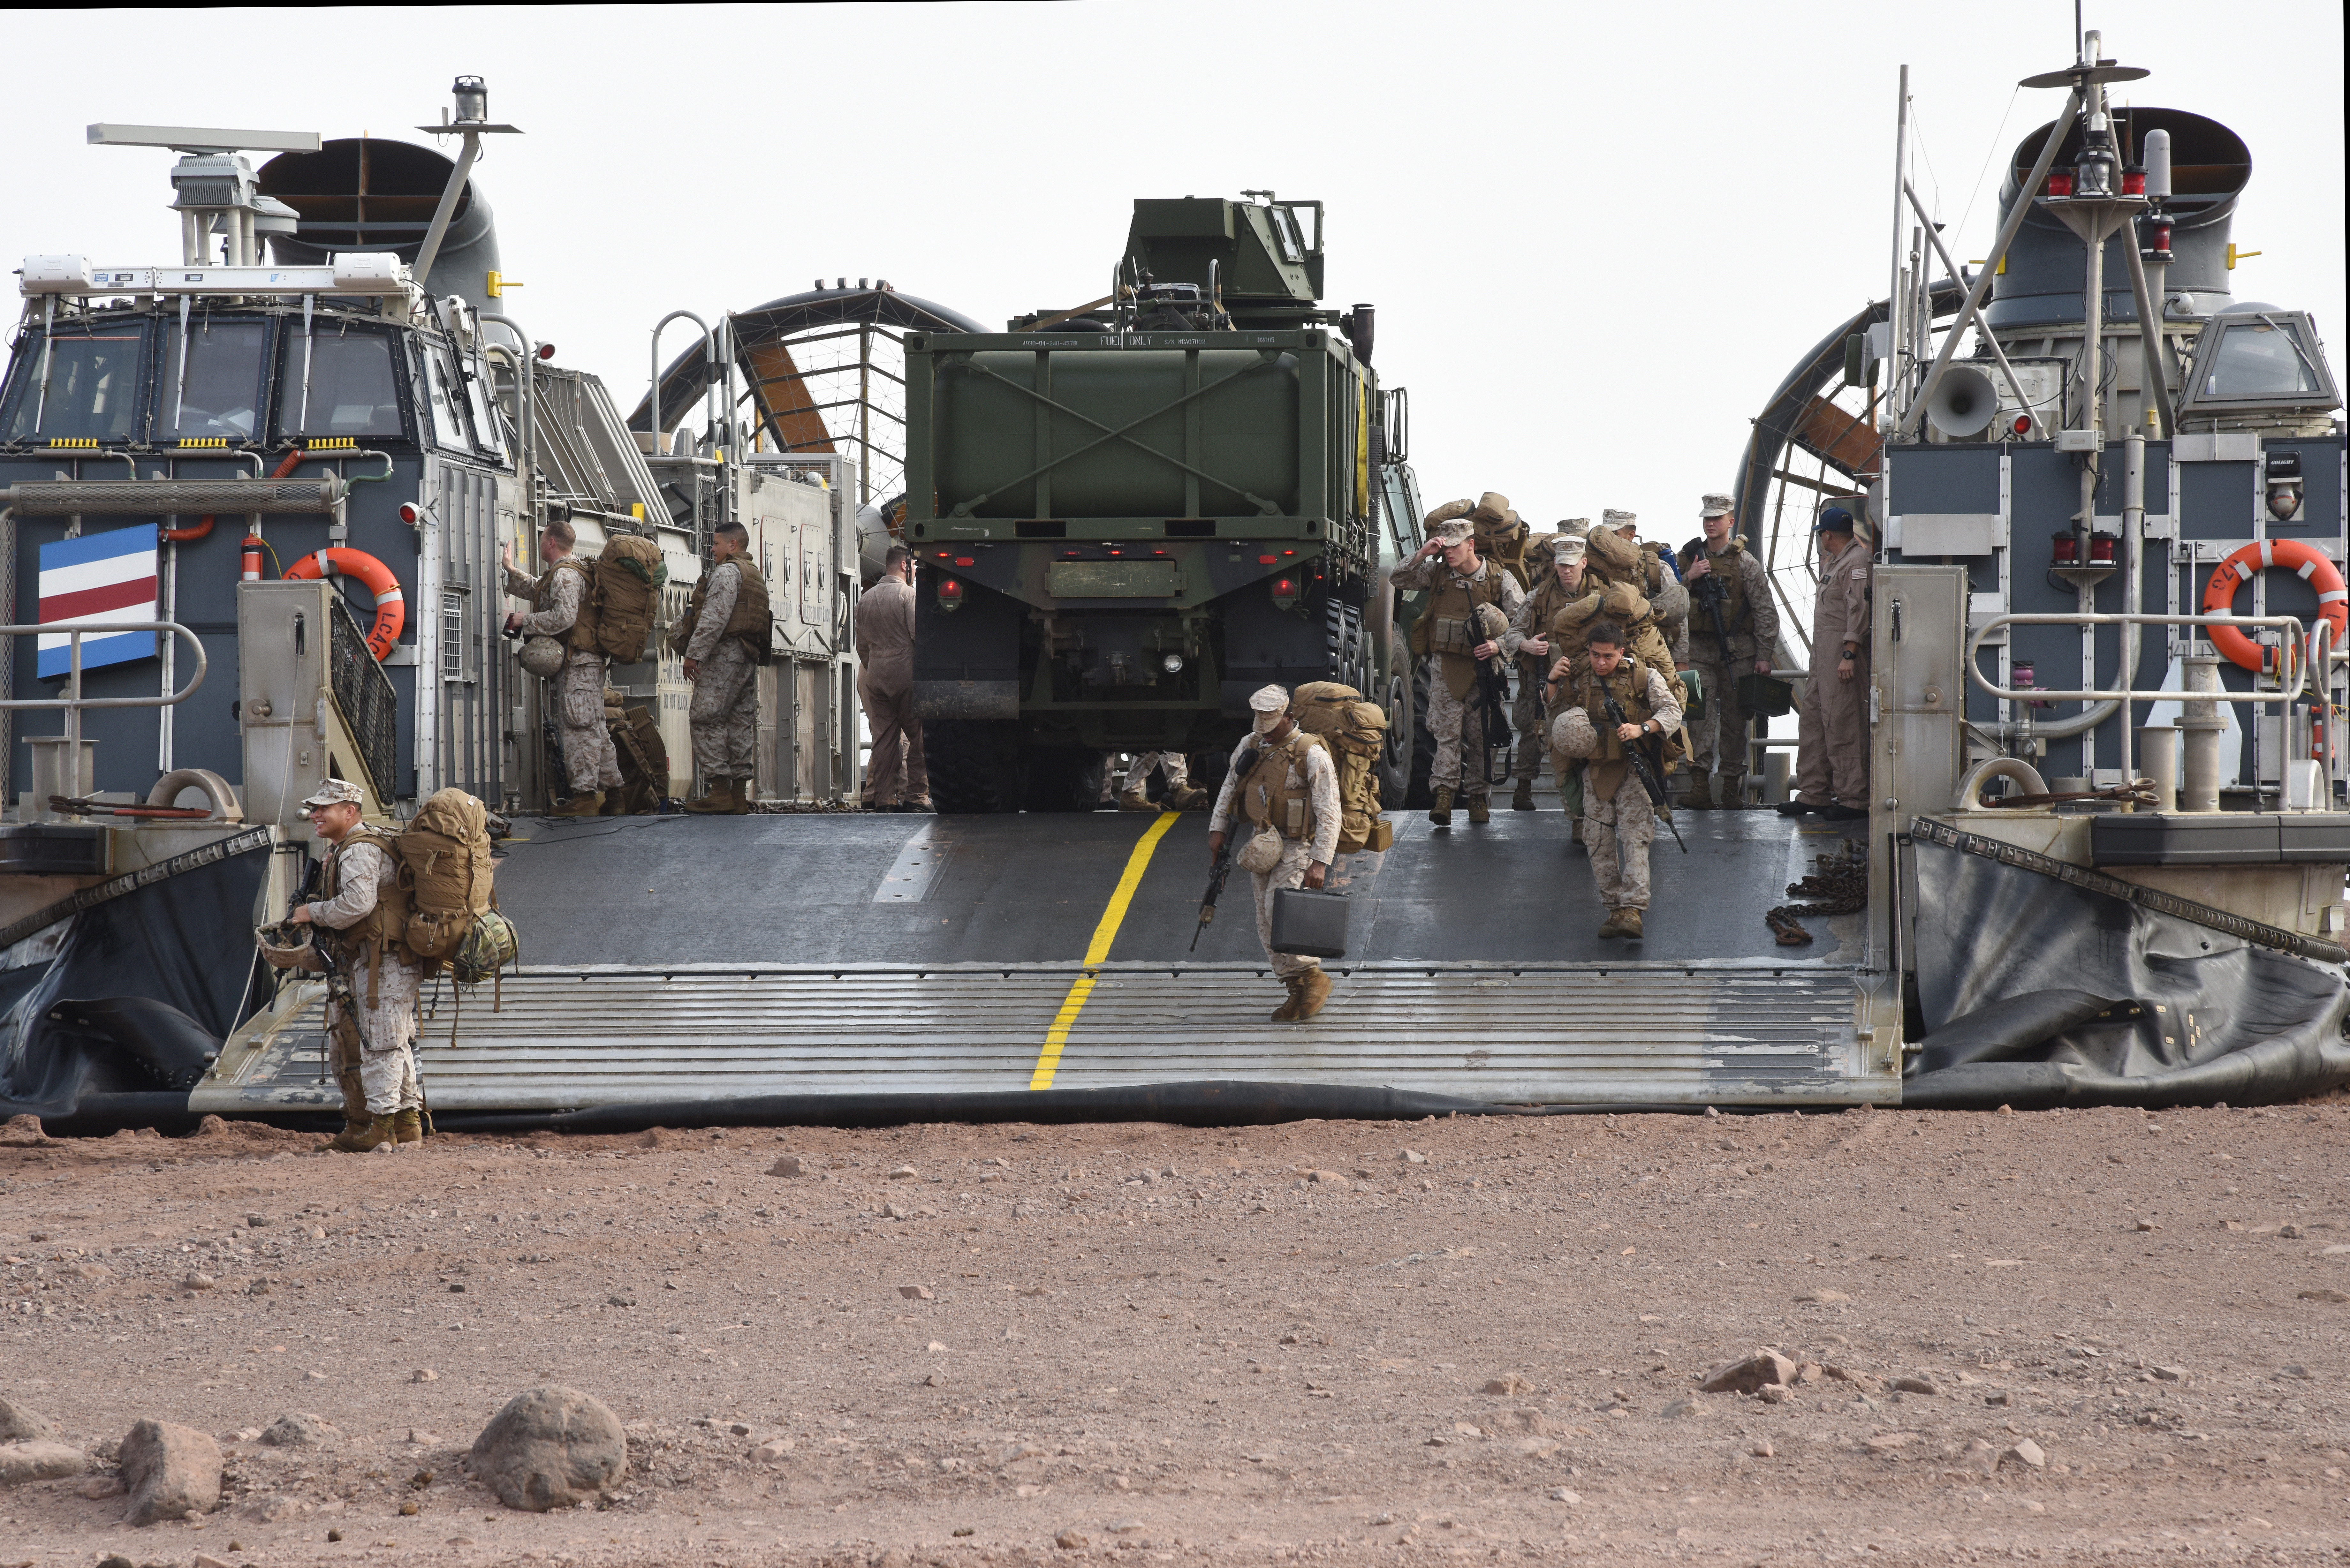 U.S. Marines from the 15th Marine Expeditionary Unit disembark from a U.S. Navy Landing Craft Air Cushion (LCAC) in Arta, Djibouti, July 20, 2015. The Marines came from USS Anchorage for two weeks of training. (U.S. Air Force photo by Staff Sgt. Maria Bowman)